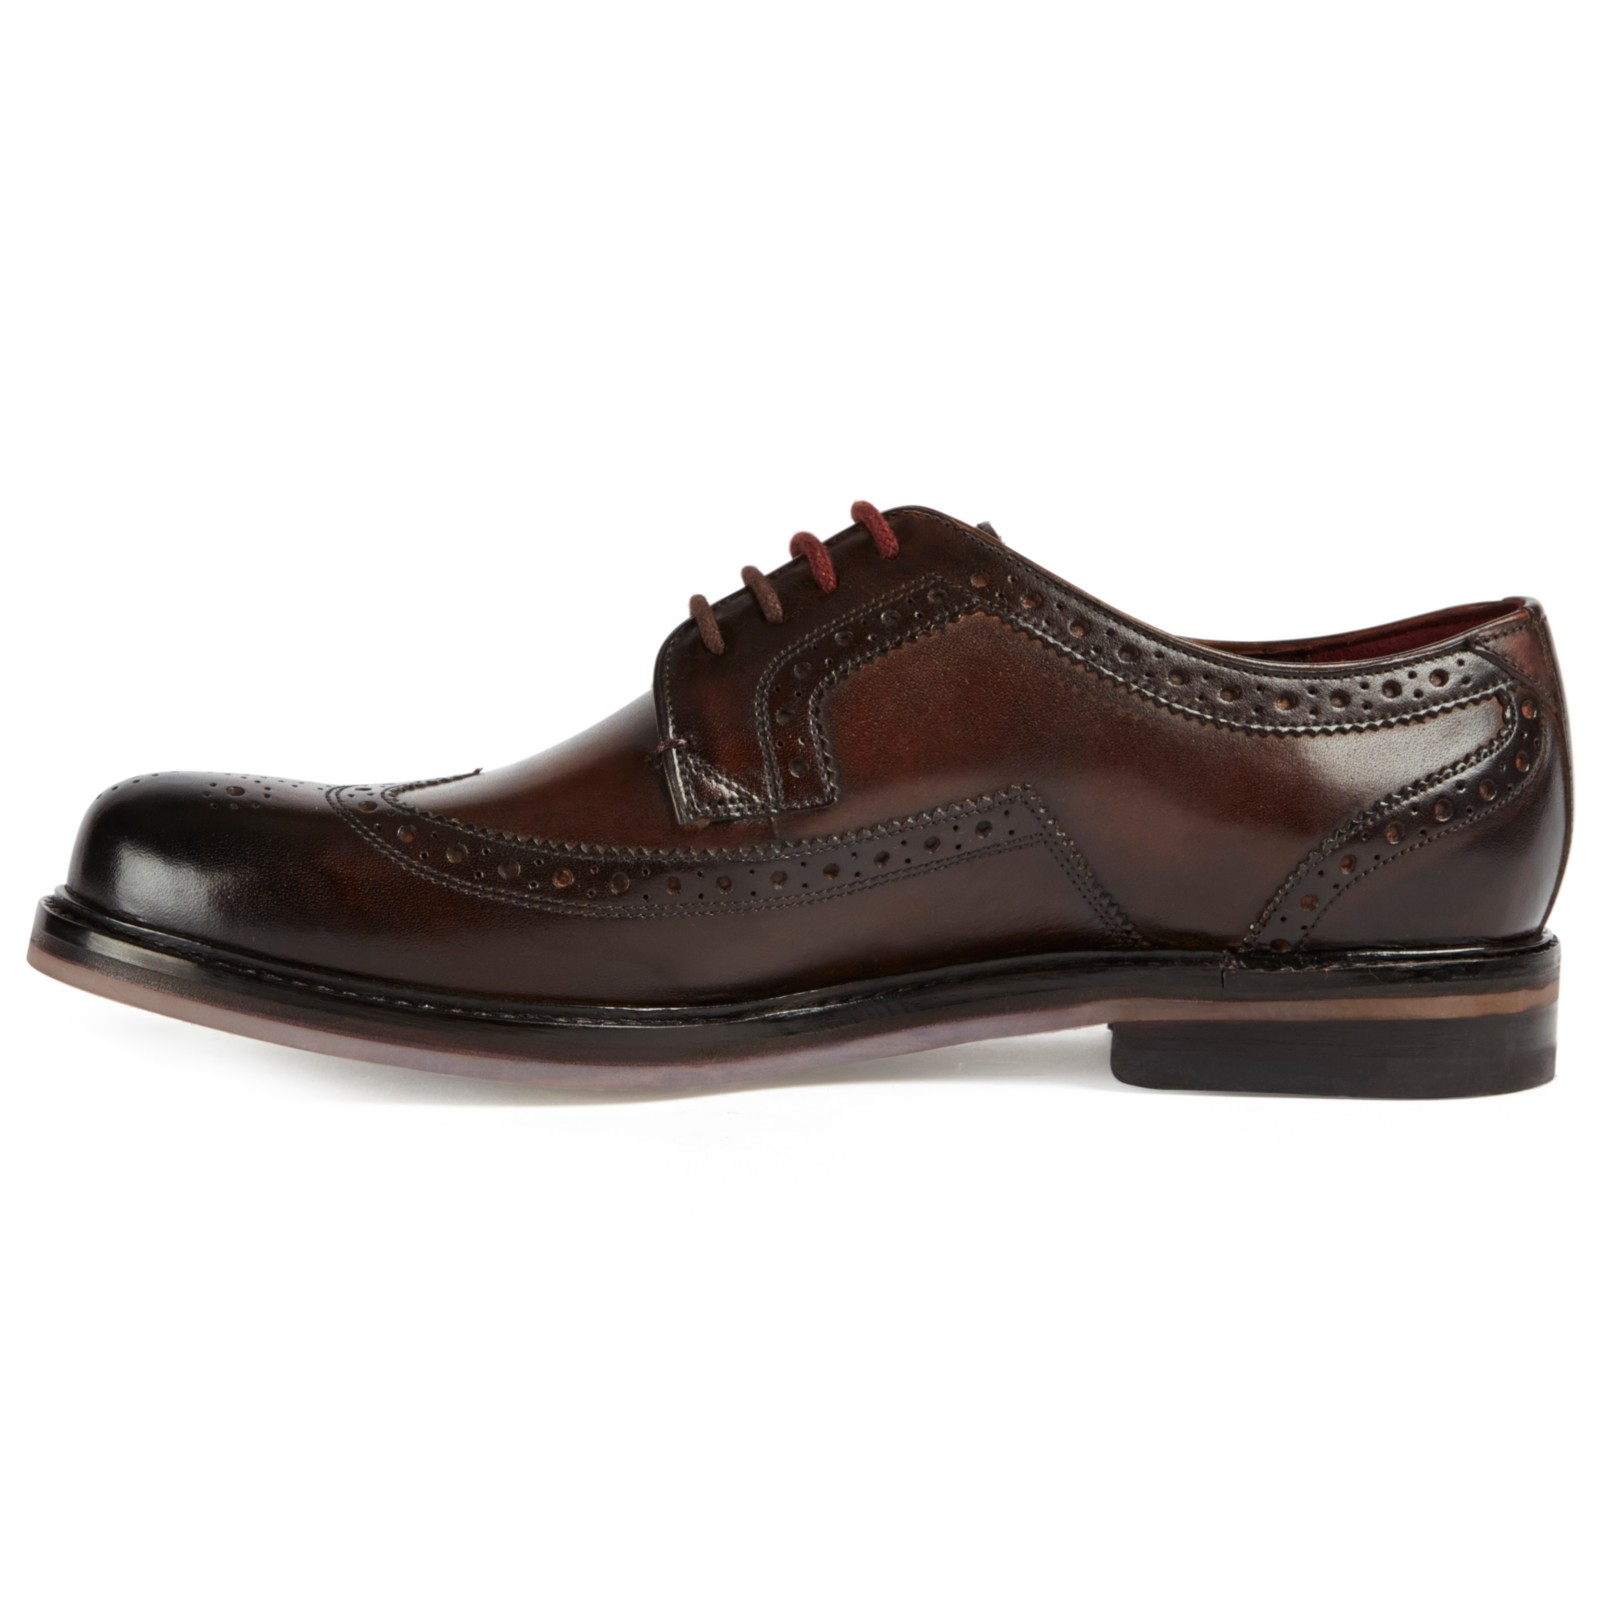 Ted Baker Leather Titanium Derby Shoes in Brown for Men